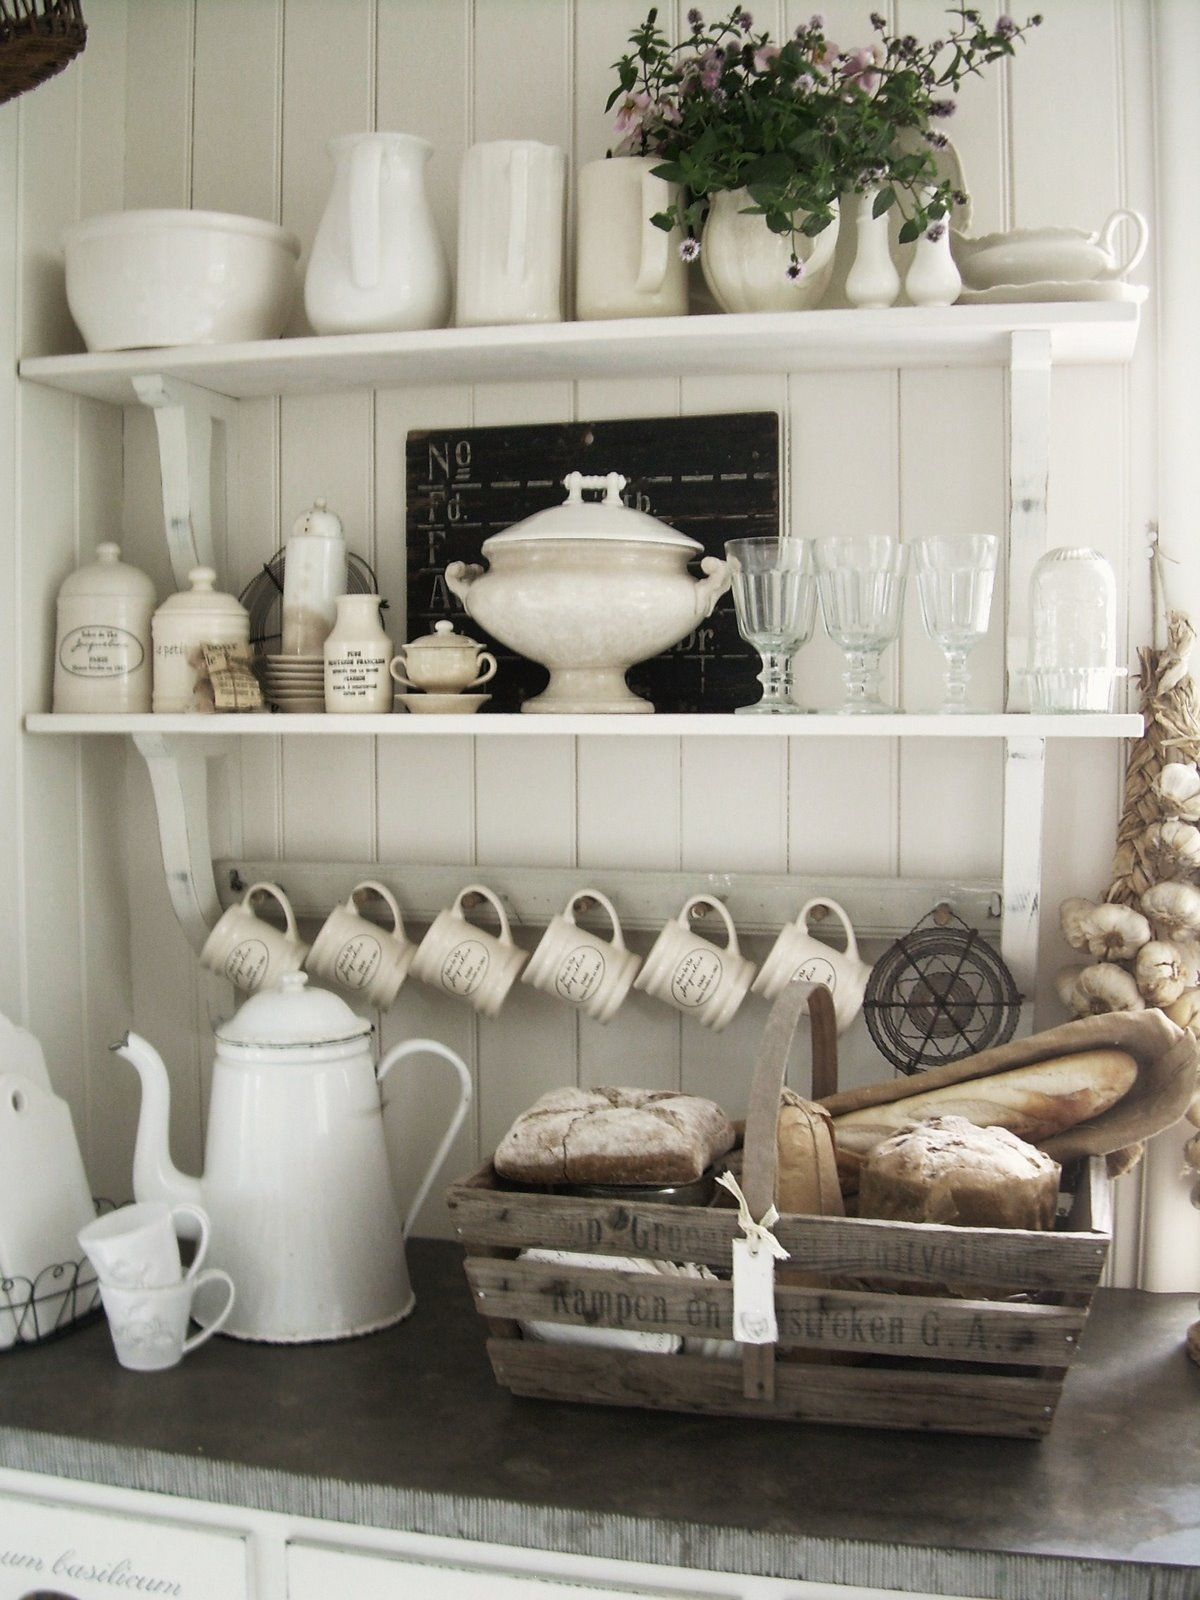 kitchen shelves and mug hooks | Dream Farm home/land | Pinterest ...